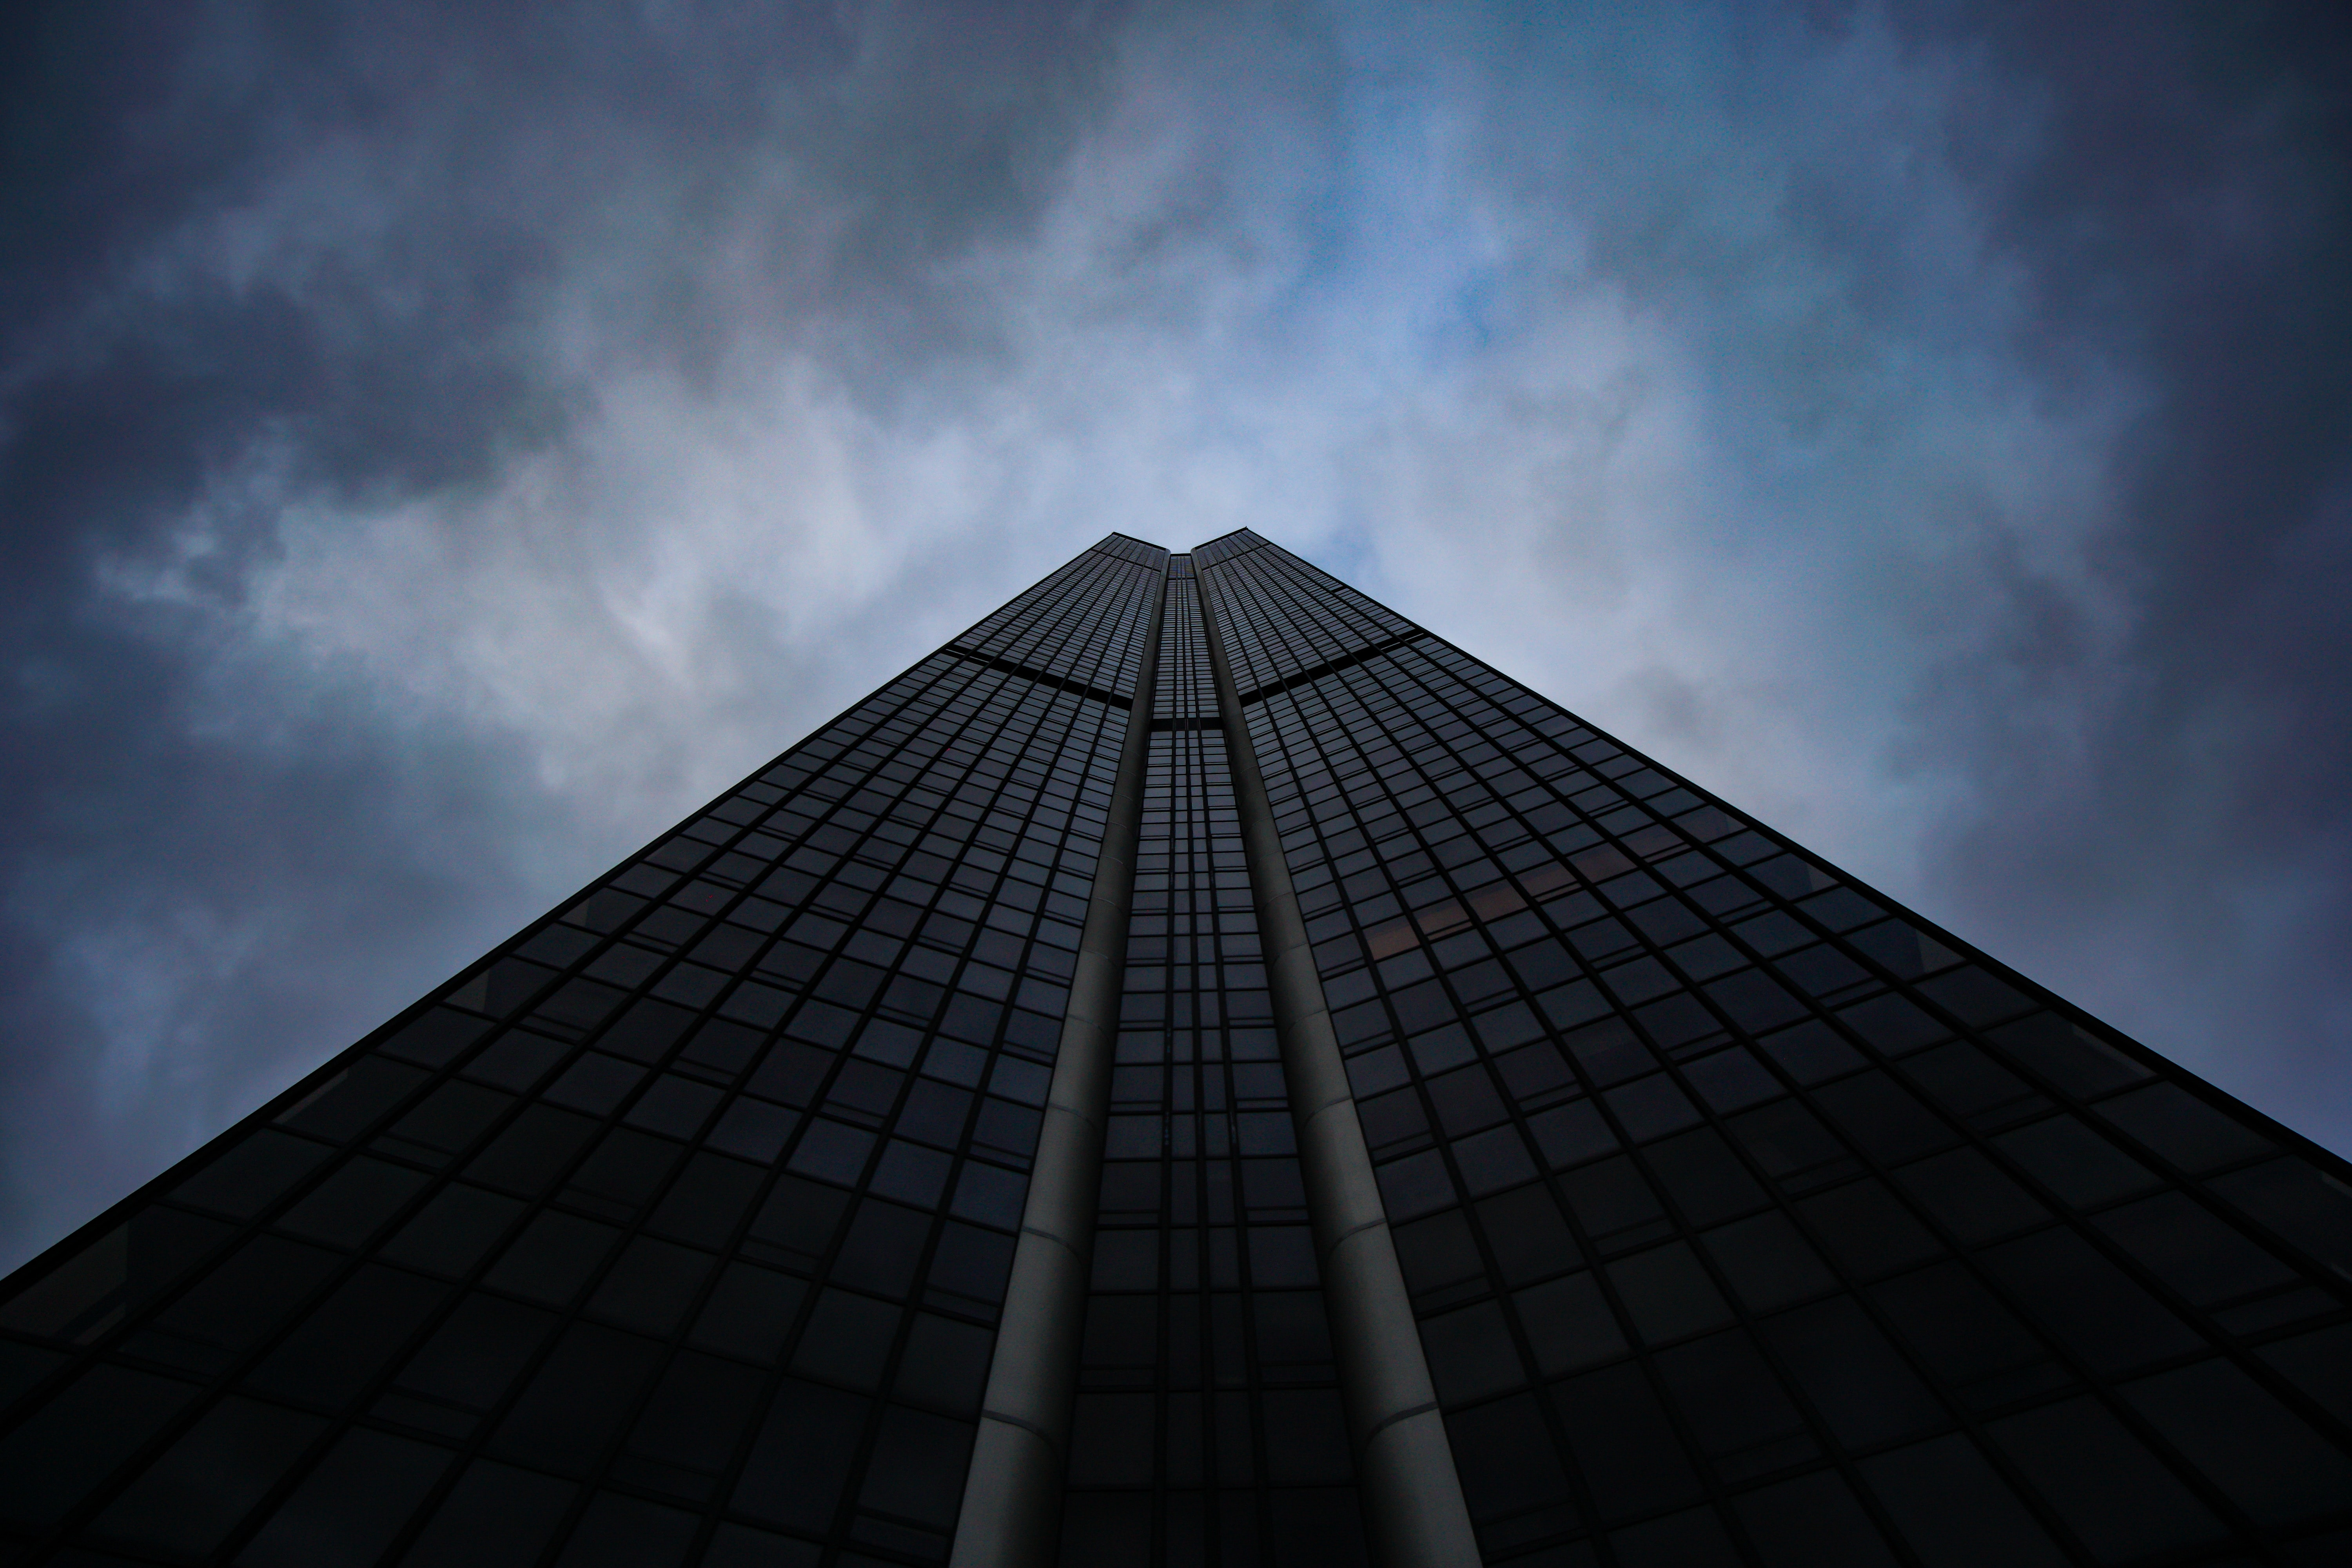 low-angle photography of black concrete building with glasses under cloudy sky